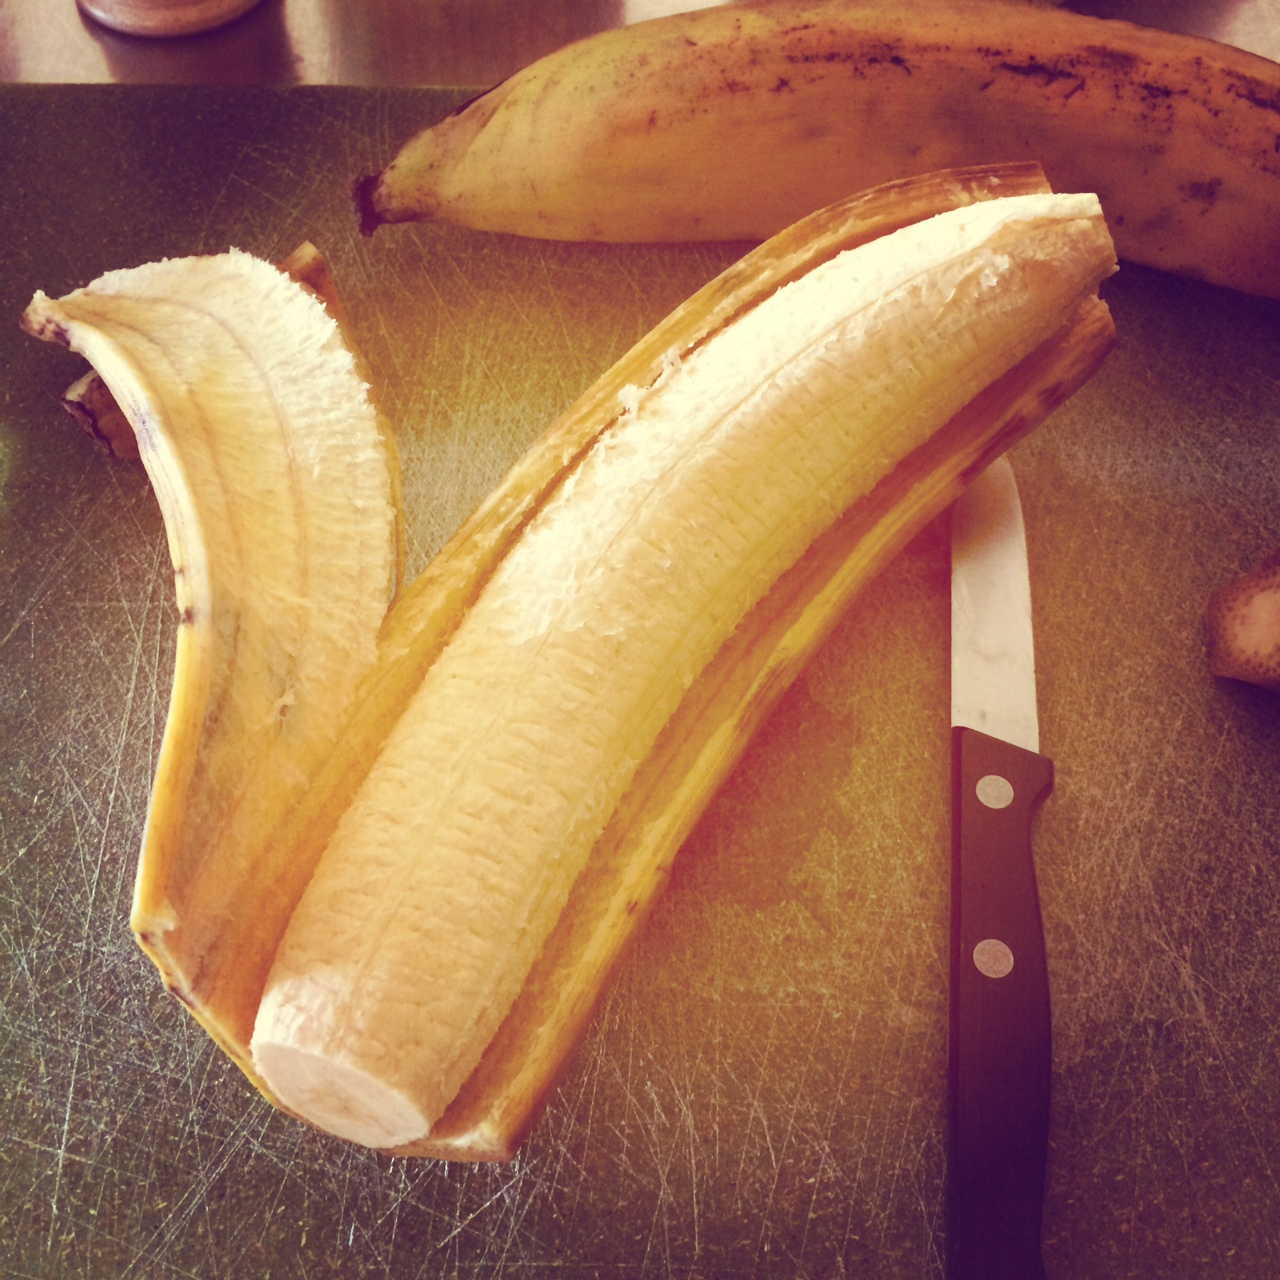 Proper peeling for plantains